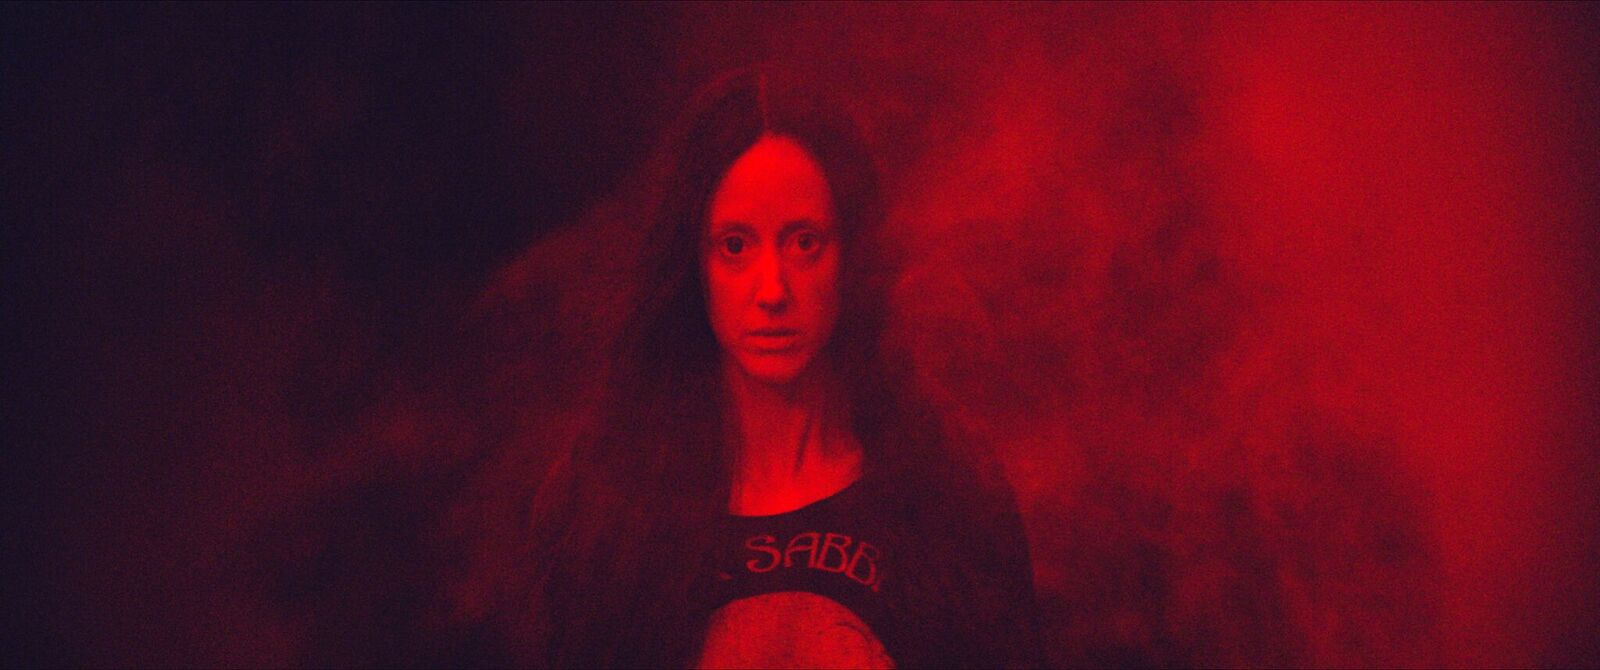 Andrea Riseborough es Mandy.